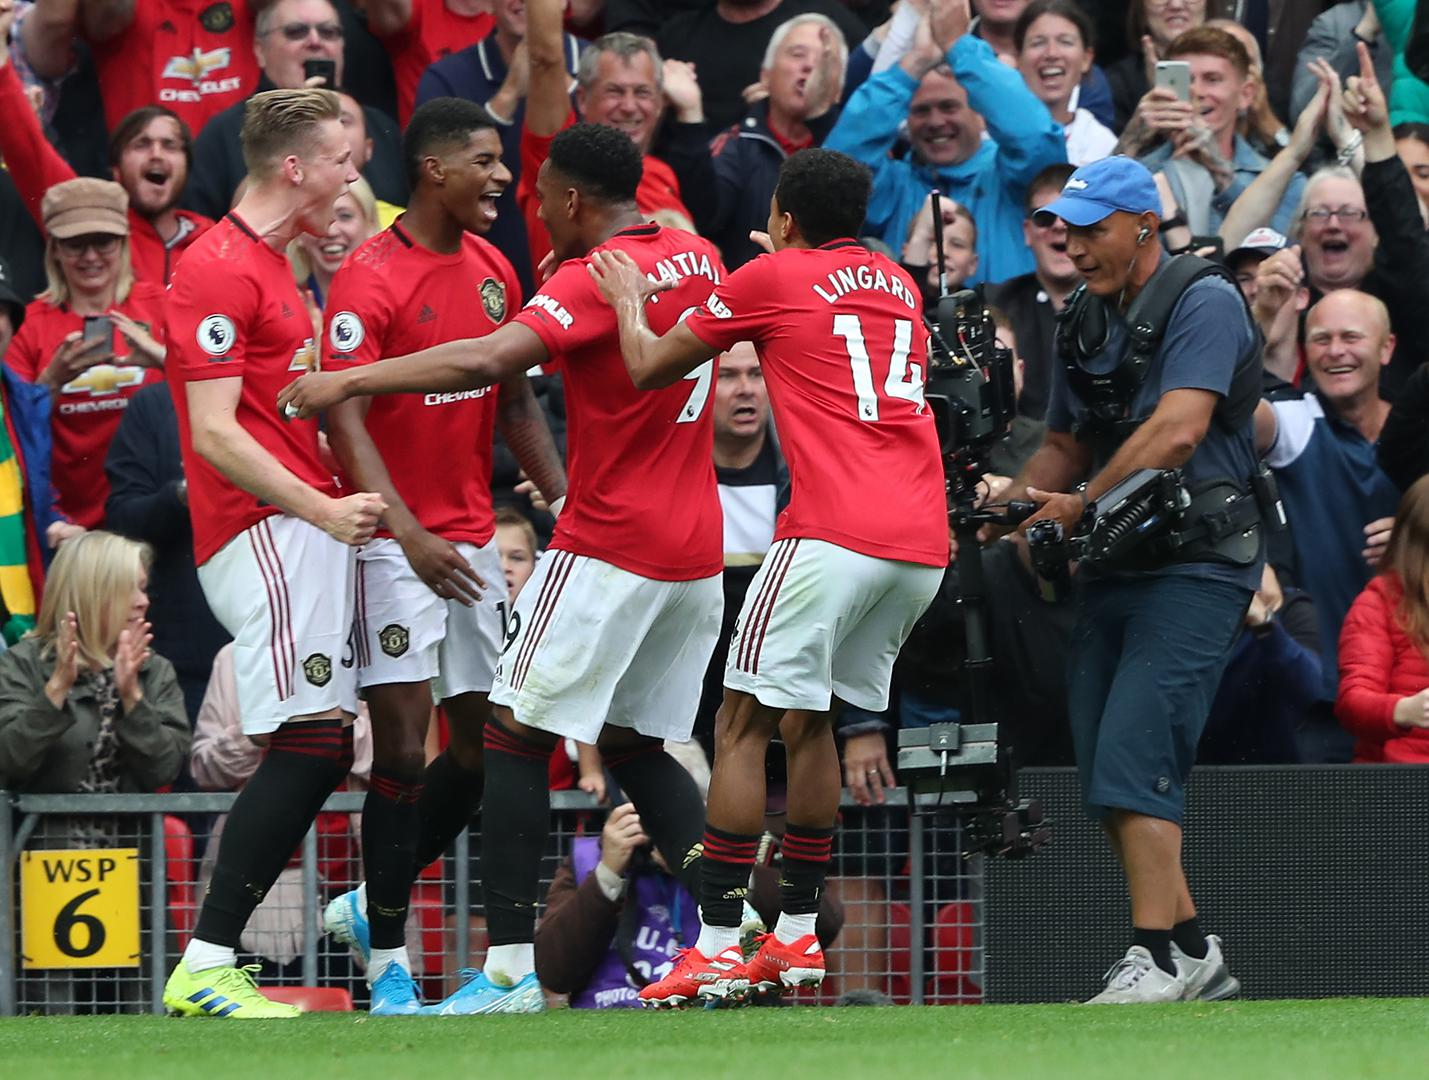 Marcus Rashford is mobbed after scoring his second goal.